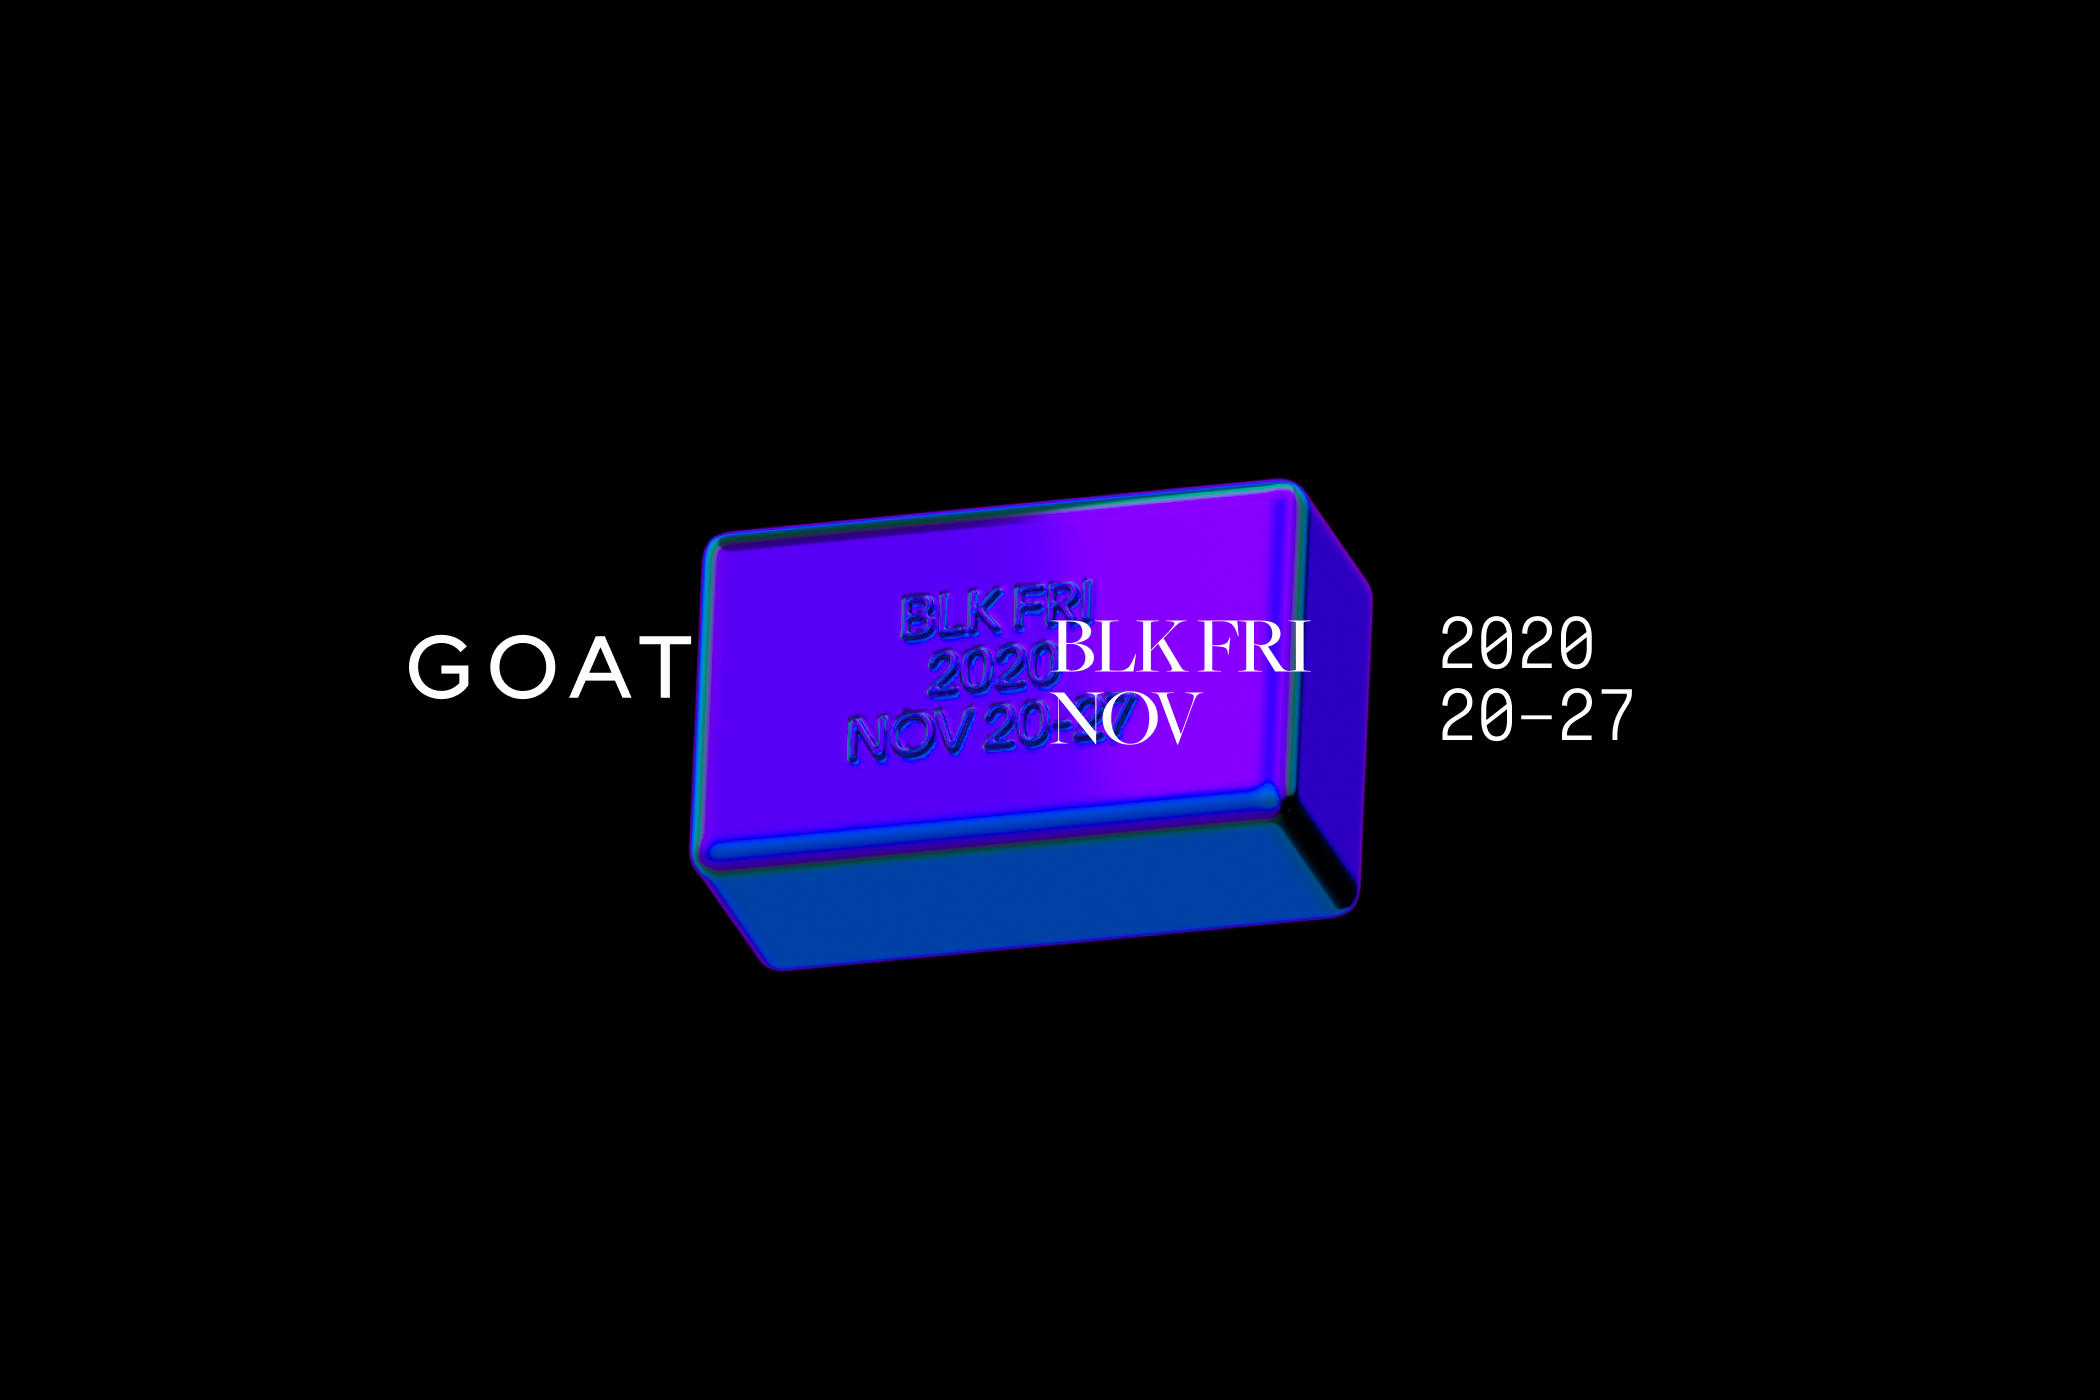 Saweetie, Kyle Kuzma & More Join GOAT For Annual Black Friday Event